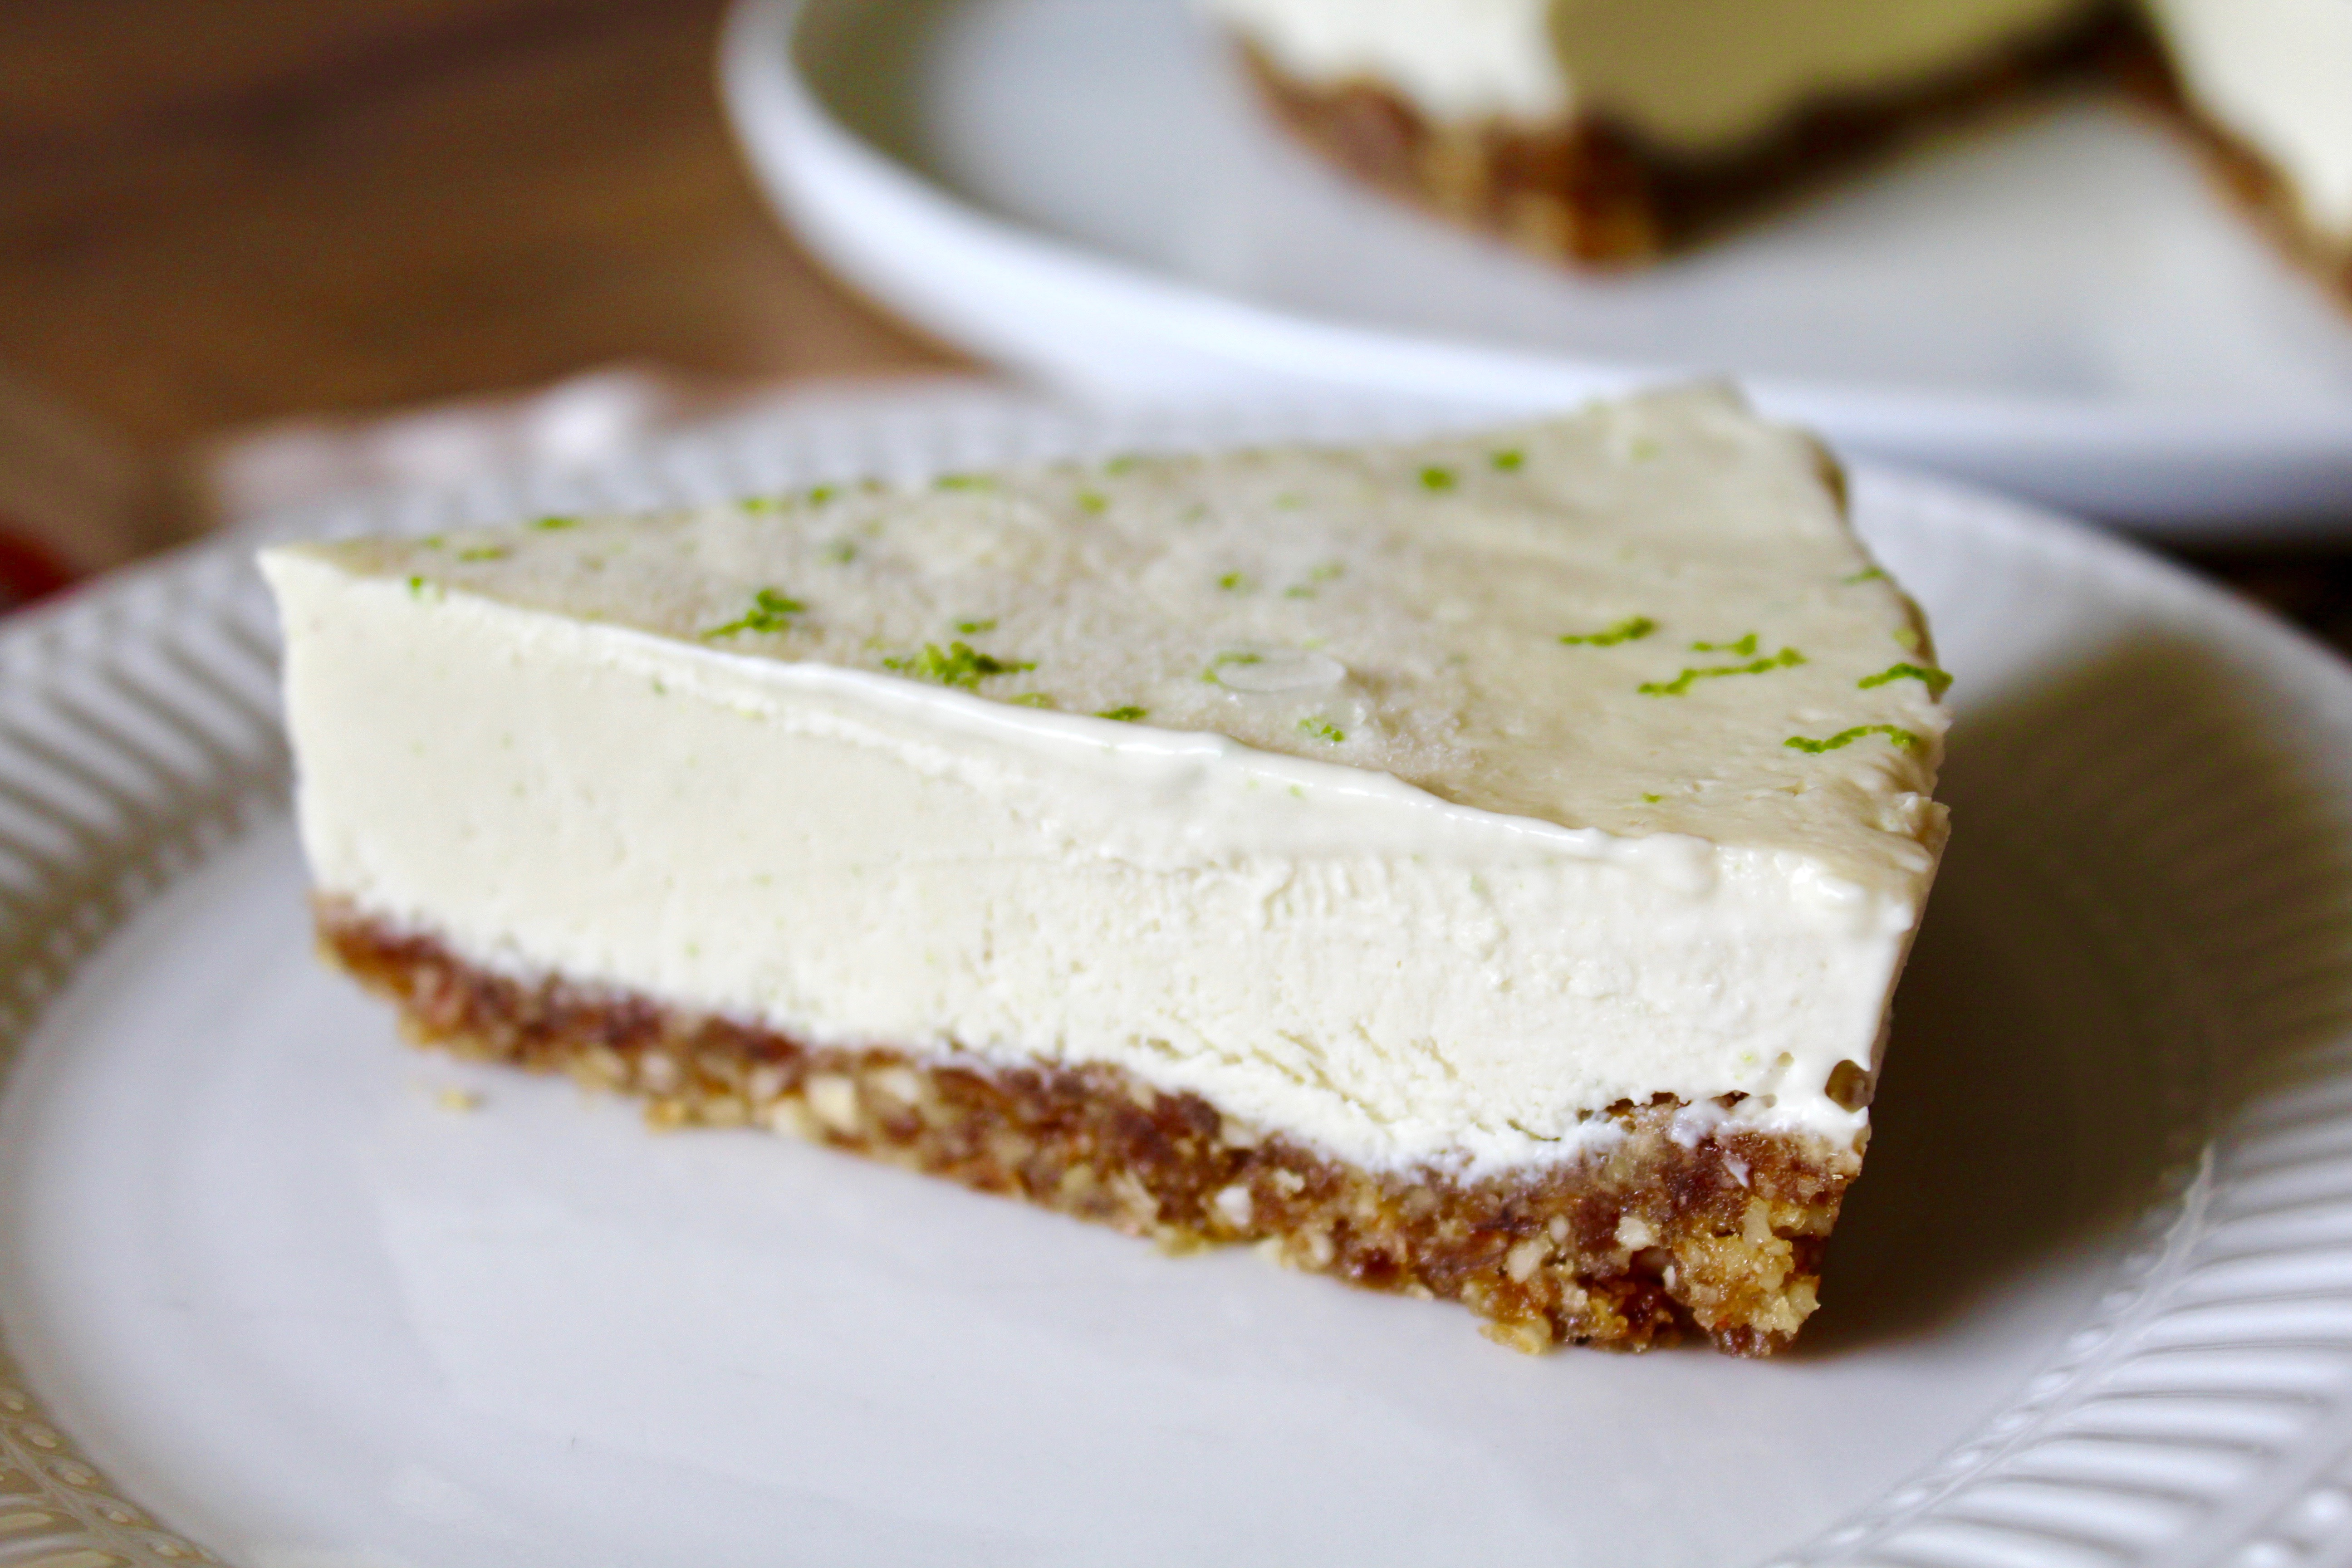 Vegan Key Lime Pie Nuts About Greens